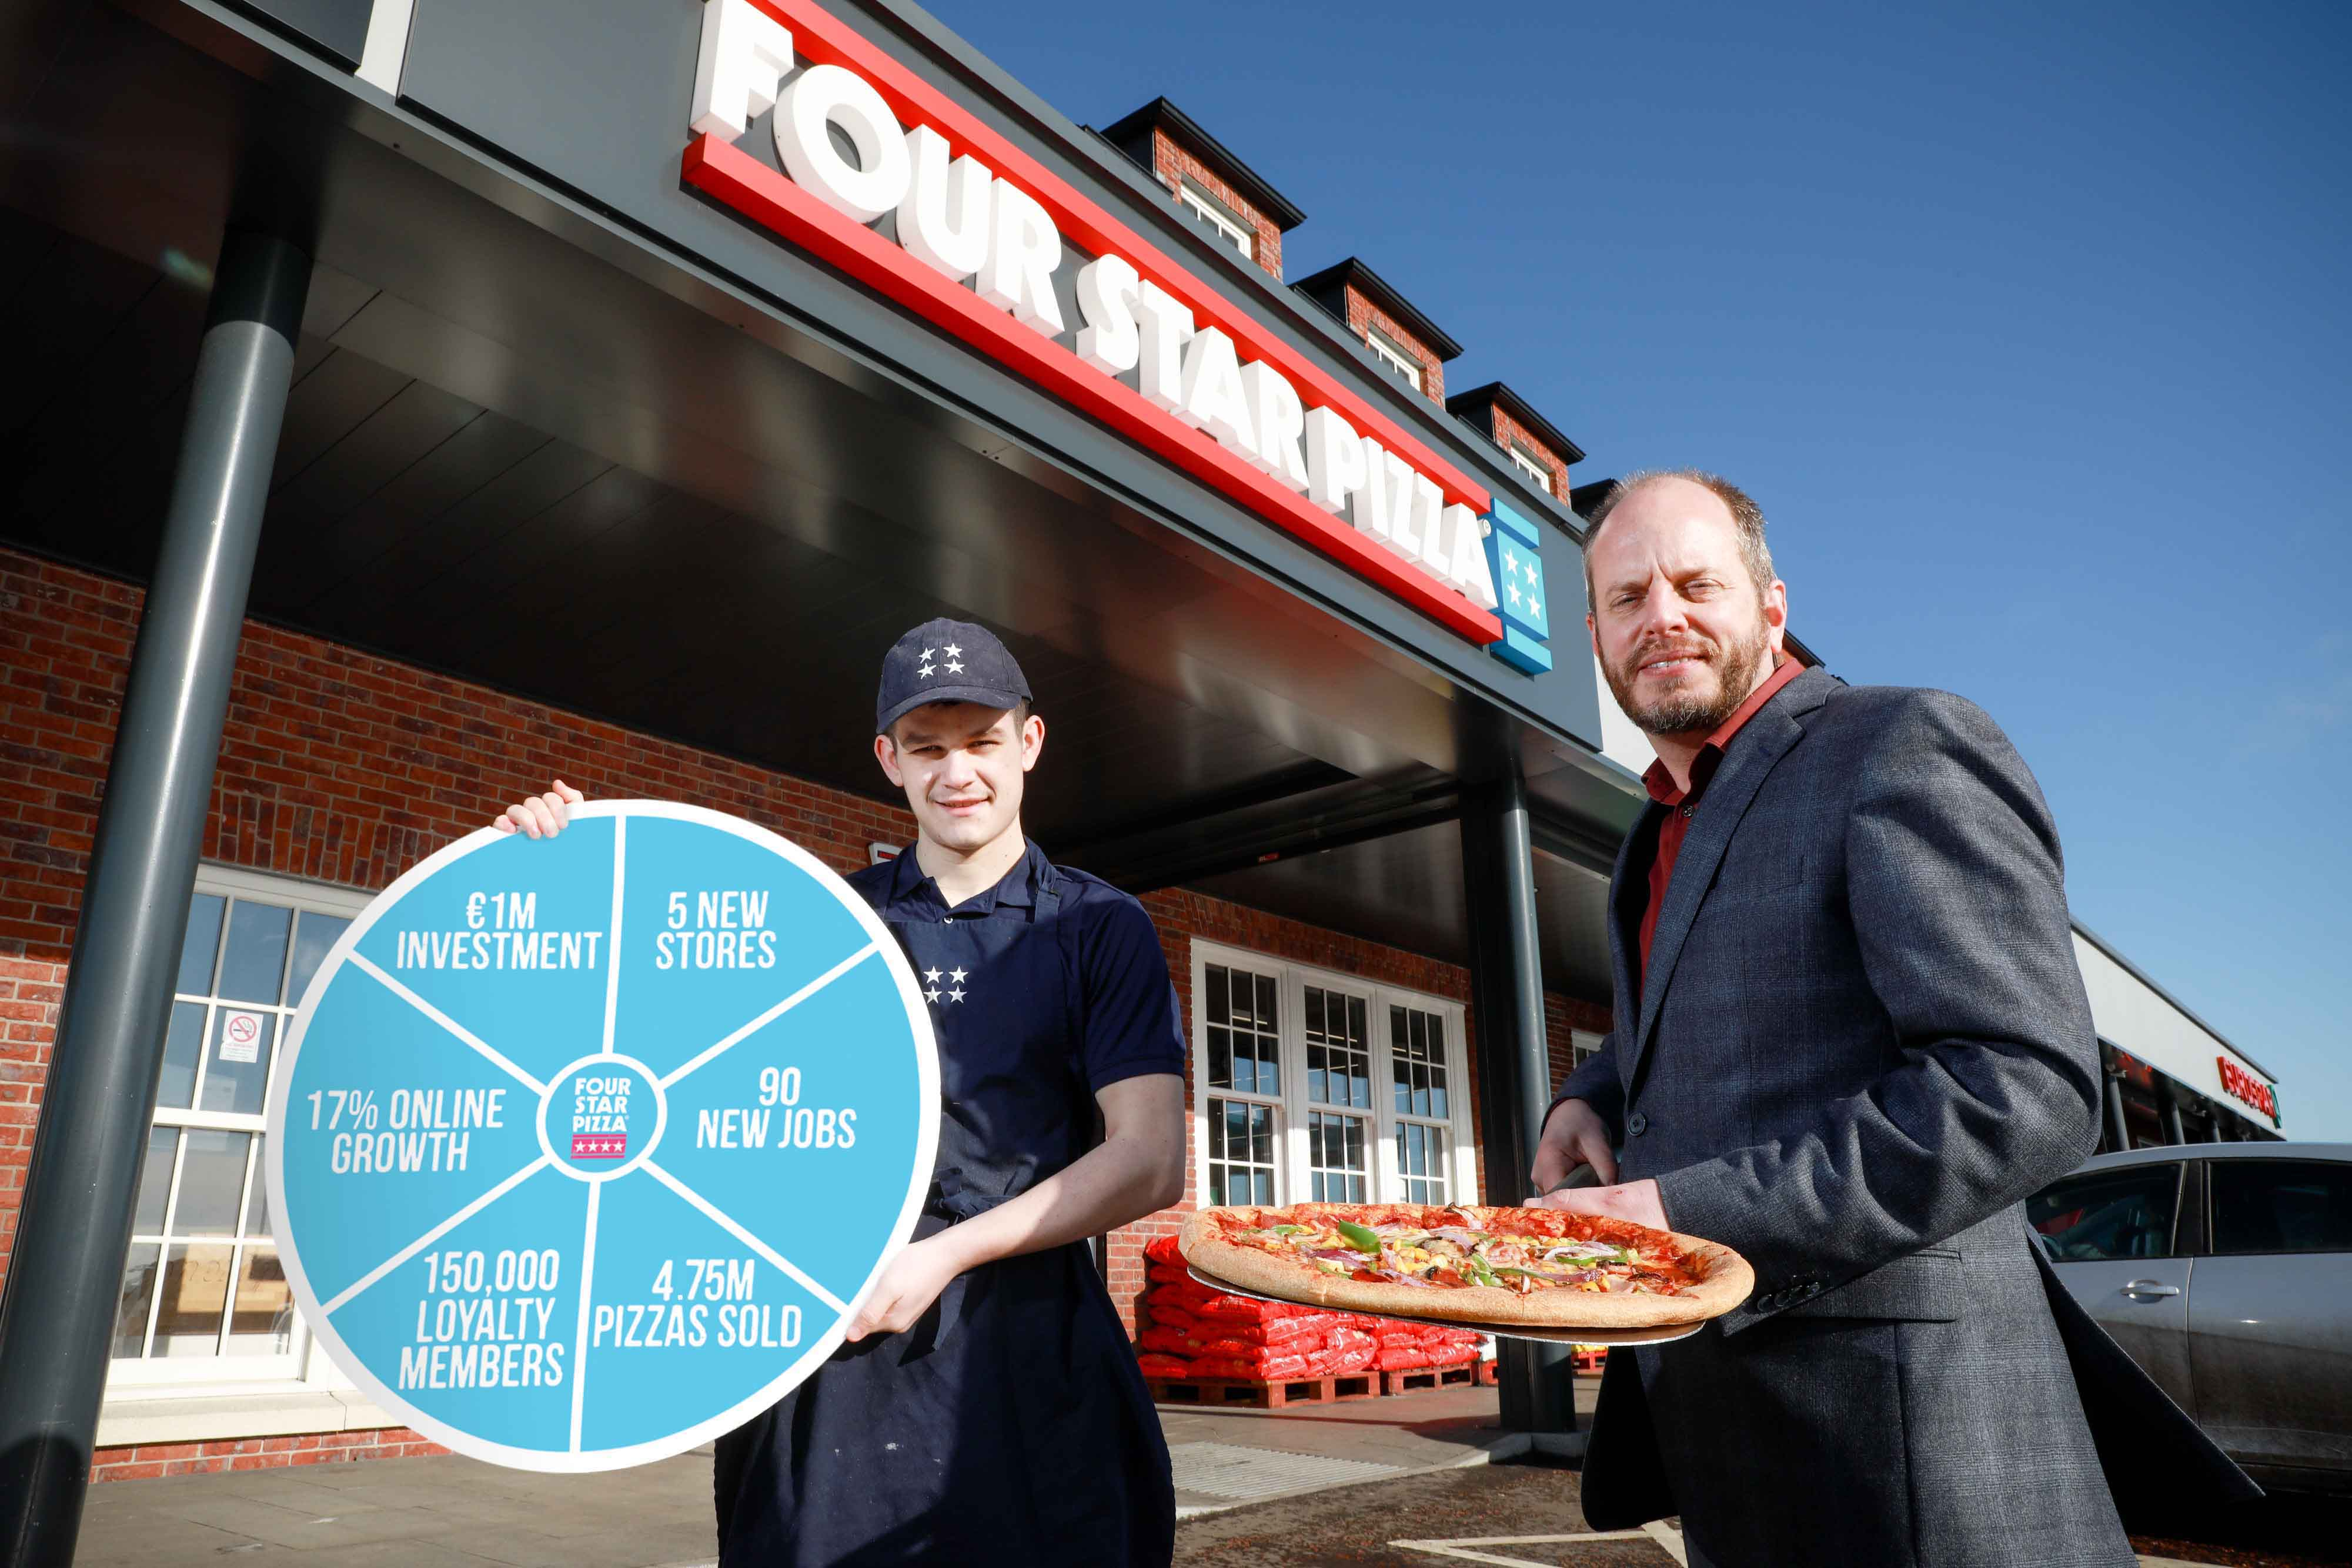 AN INCREASE of 17% in online sales helped deliver record results last year for Four Star Pizza (FSP) in Ireland. Fuelled by this significant online growth, the wholly Irish-owned pizza chain enjoyed its best year of sales since it was founded in 1986. With investment of approx €1 million in the brand, 2019 also saw the opening of five new stores and creation of 90 new jobs in the process. This brings the total number of FSP stores on the island of Ireland to 60, including 14 in Northern Ireland. Pictured at the performance announcement are (L-R) Jack Morris, Four Star Pizza employee and Brian Clarke, Four Star Pizza Director.